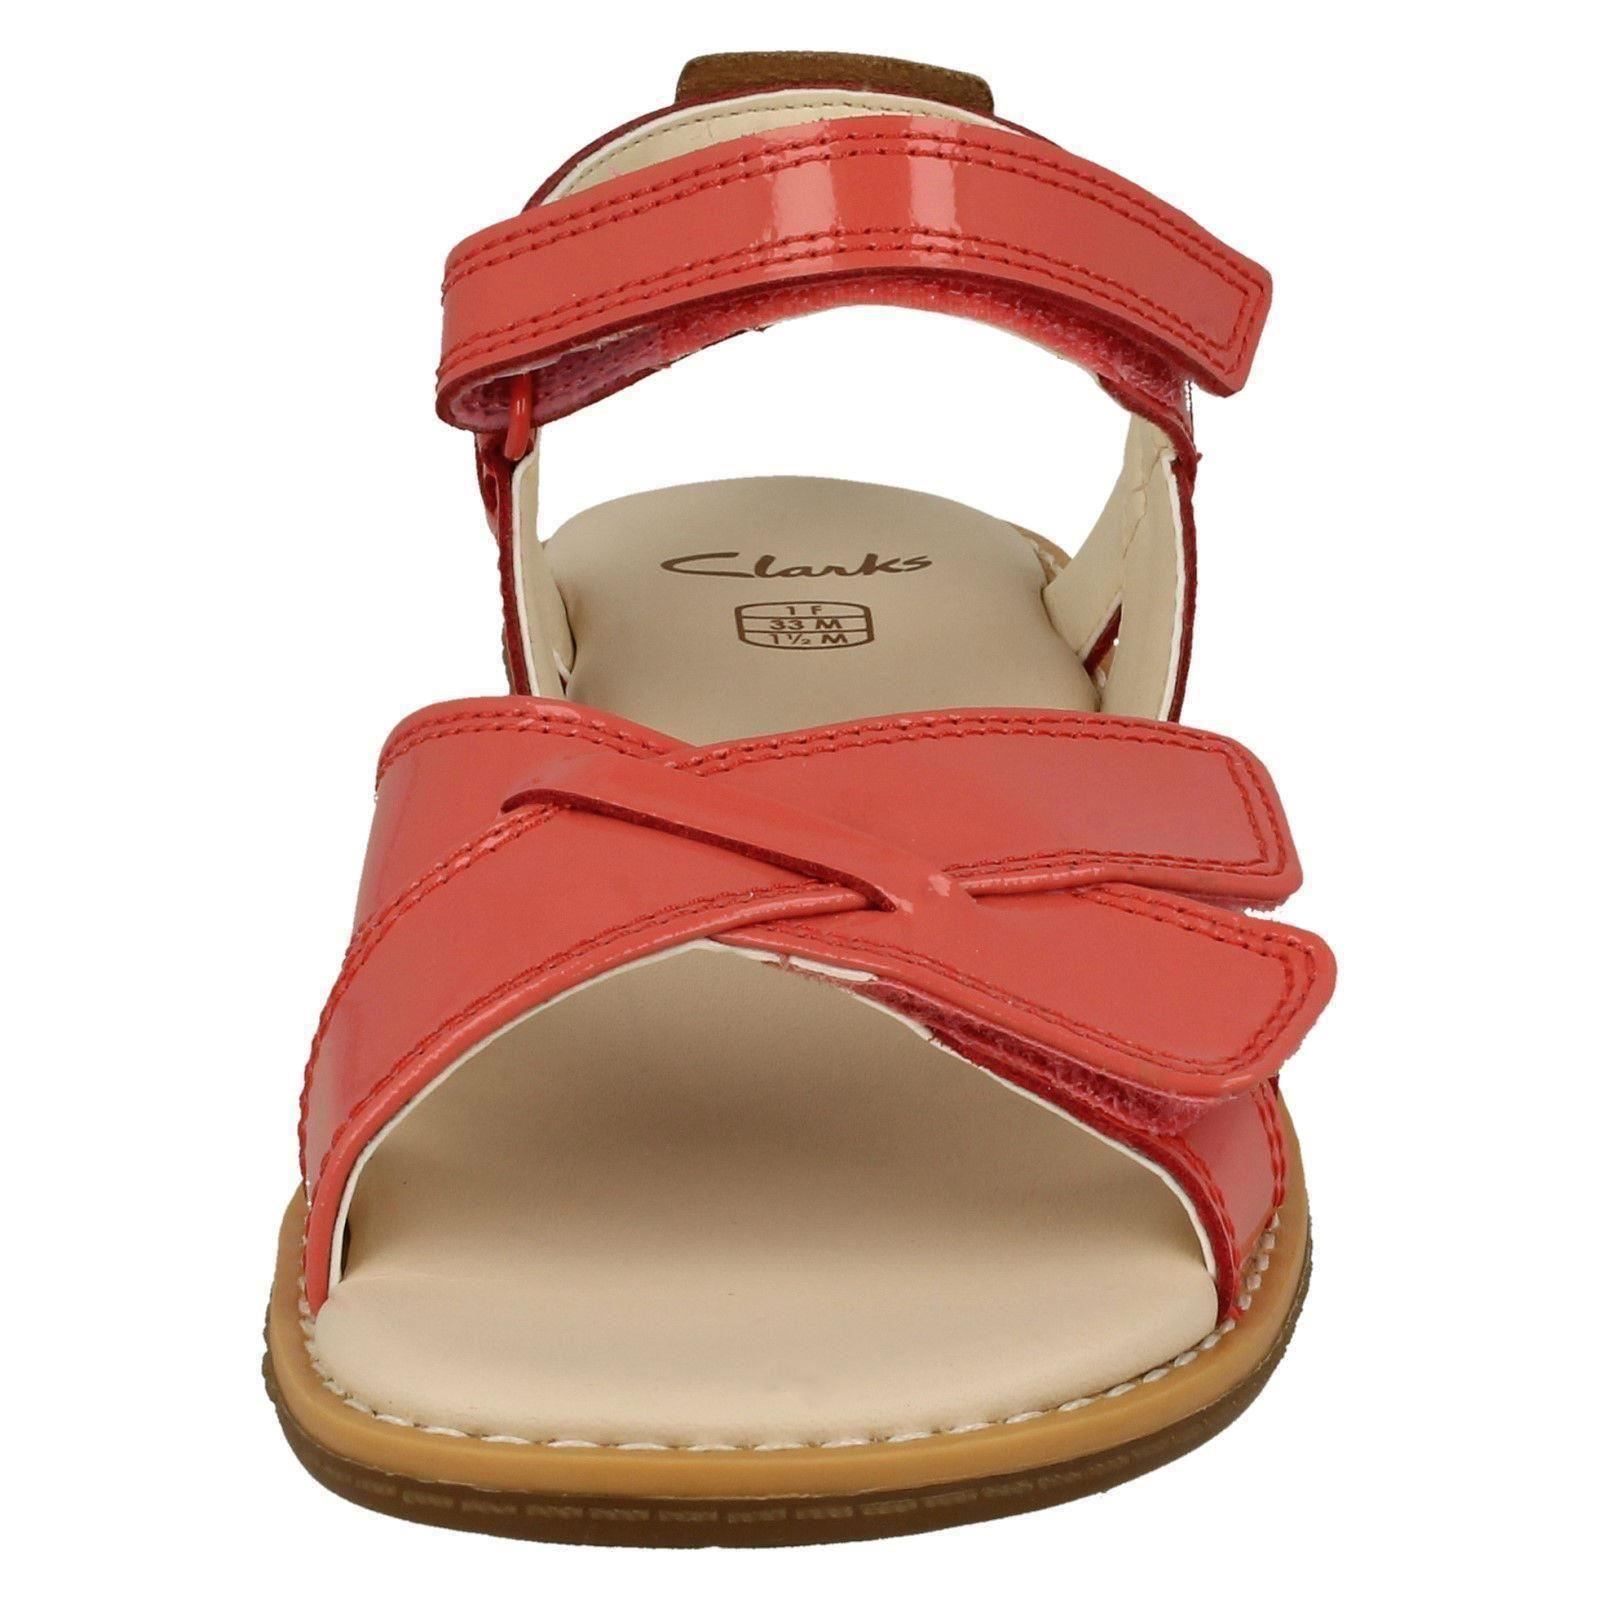 406bbd3251dfc Clarks Girls Darcy Charm Patent Leather Strappy Sandals UK 2.5 F Fitting  Coral (pink)